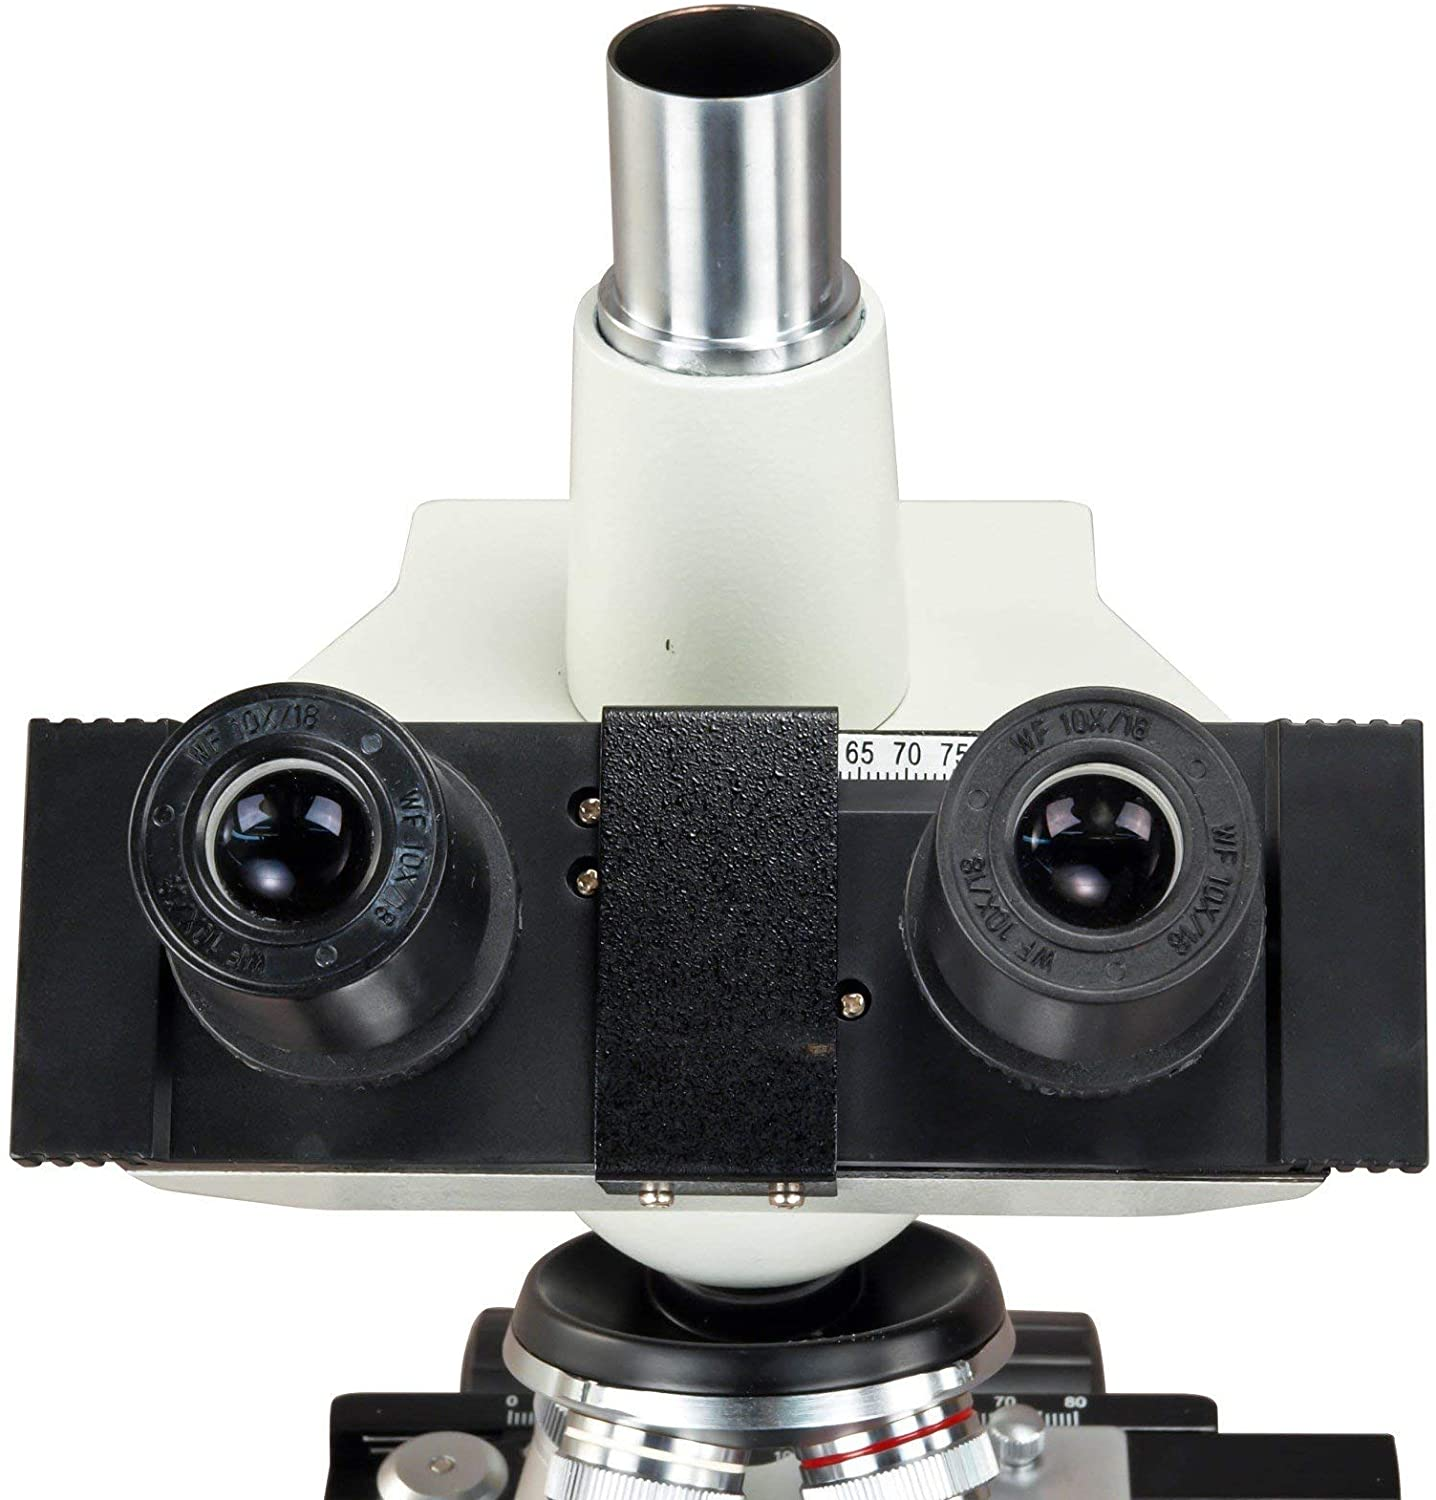 OMAX 40X-2500X Digital Lab Trinocular Compound LED Microscope with USB Digital Camera and Double Layer Mechanical Stage